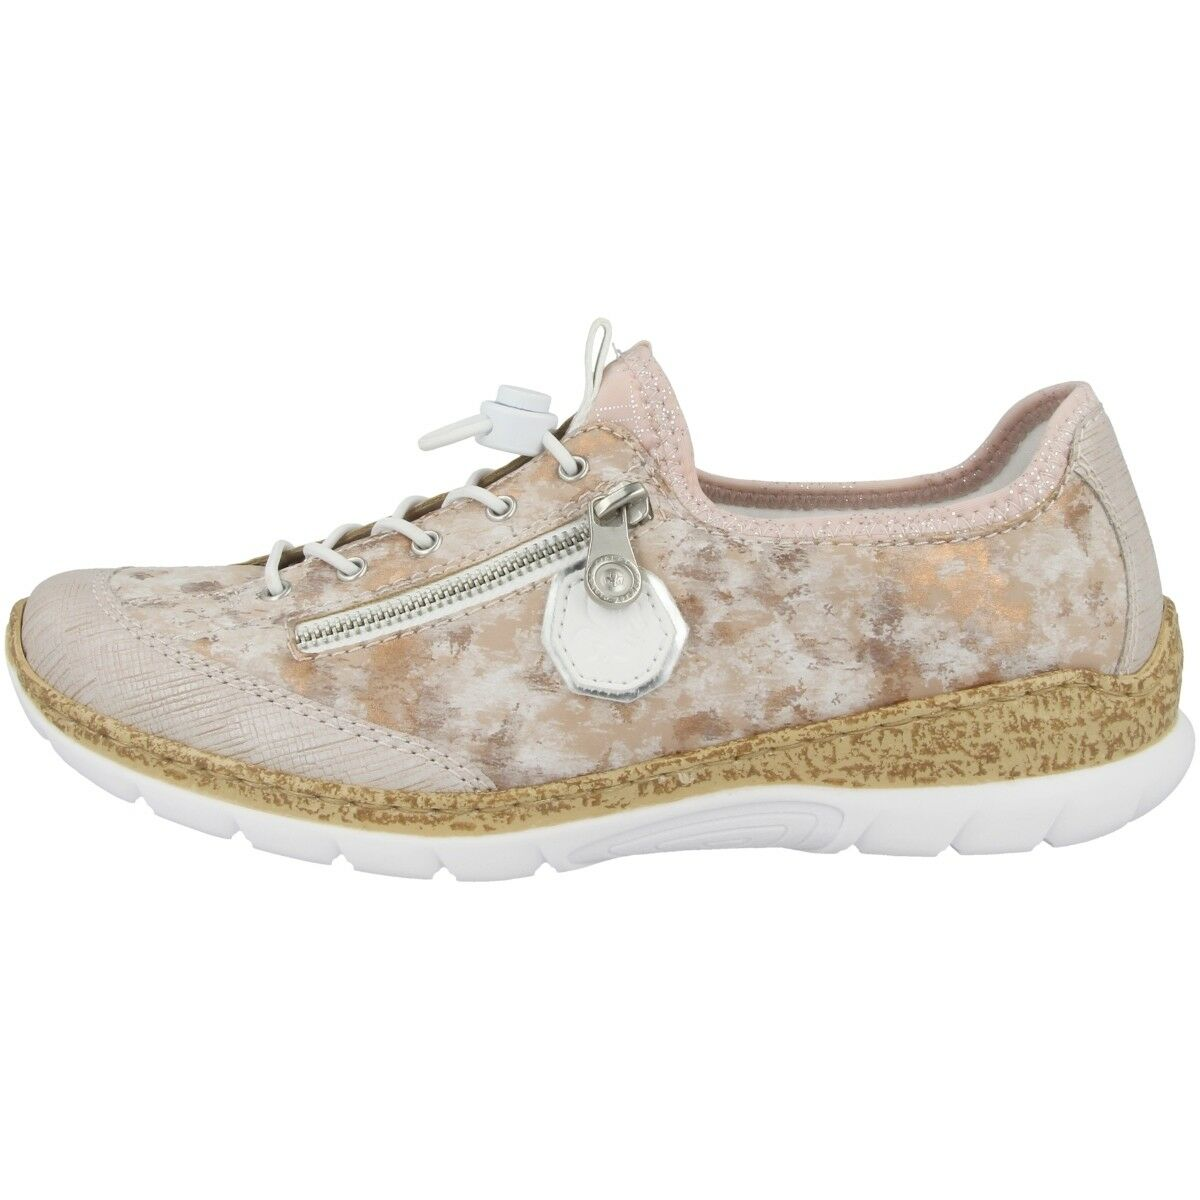 Rieker Ilridobrush-Dipinto-Mirror-Alaba shoes shoes shoes Women's Sneakers Low N4263-30 db4e66